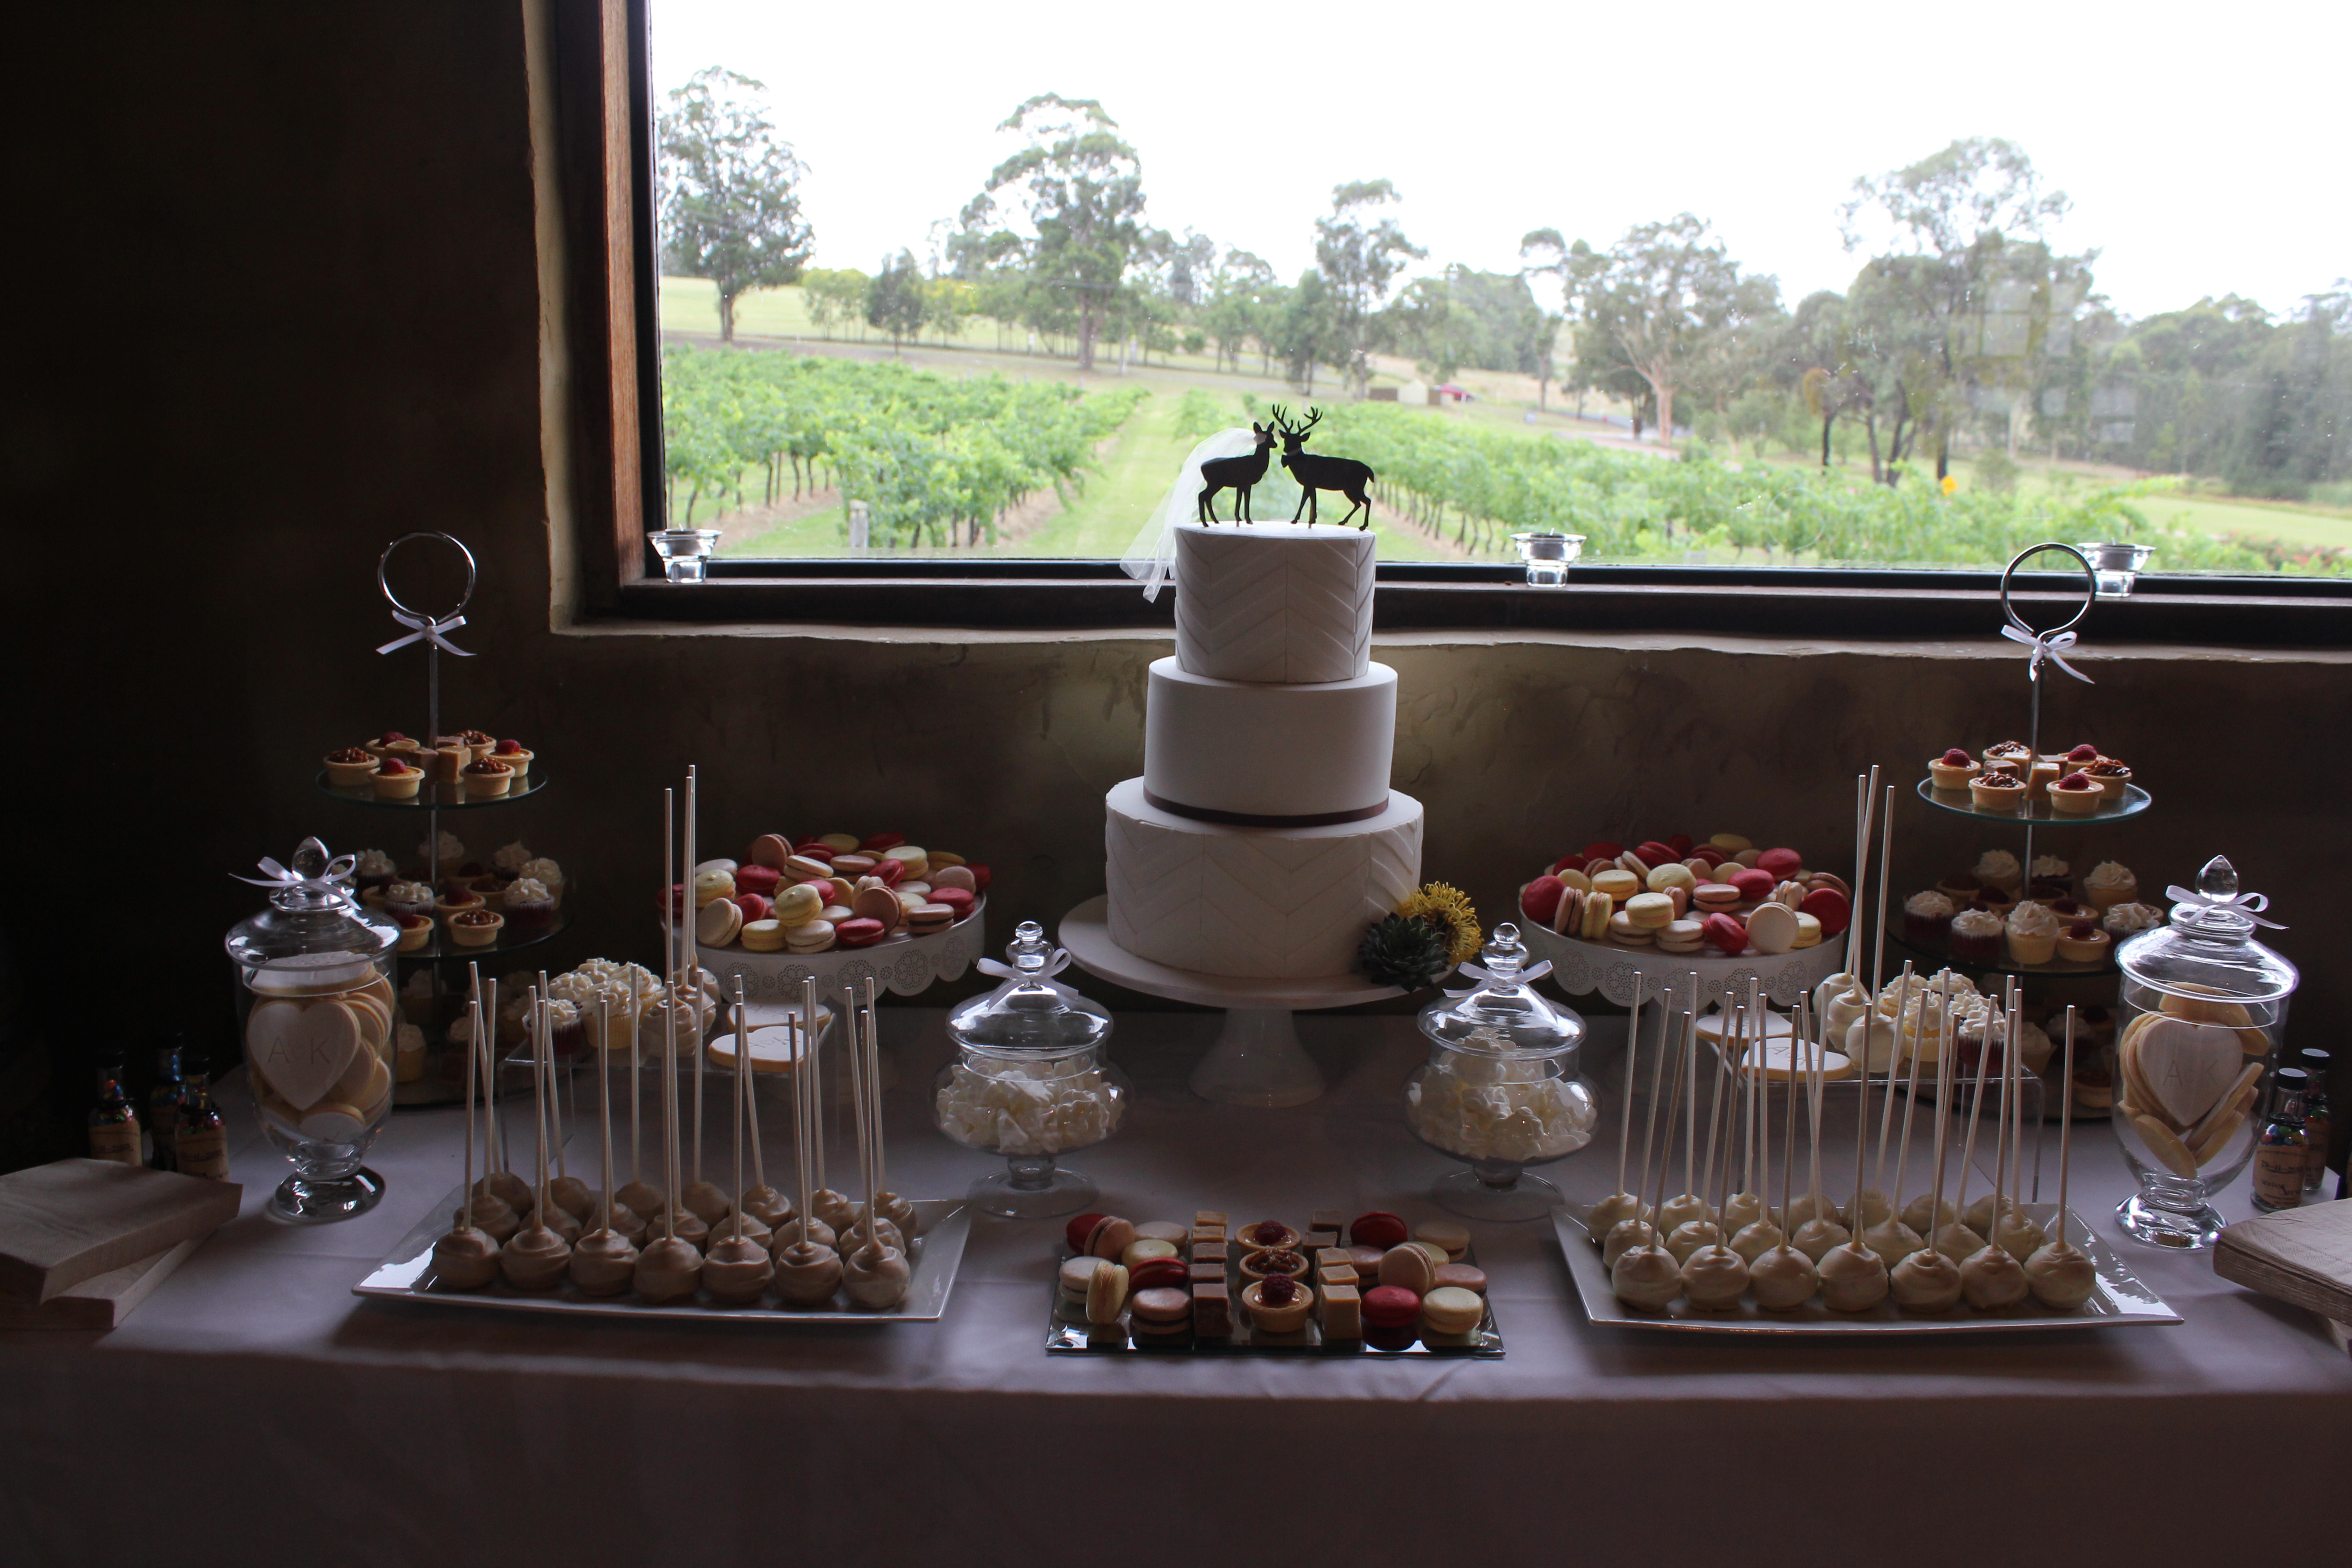 3 tier chevron panelled cake and rustic dessert table